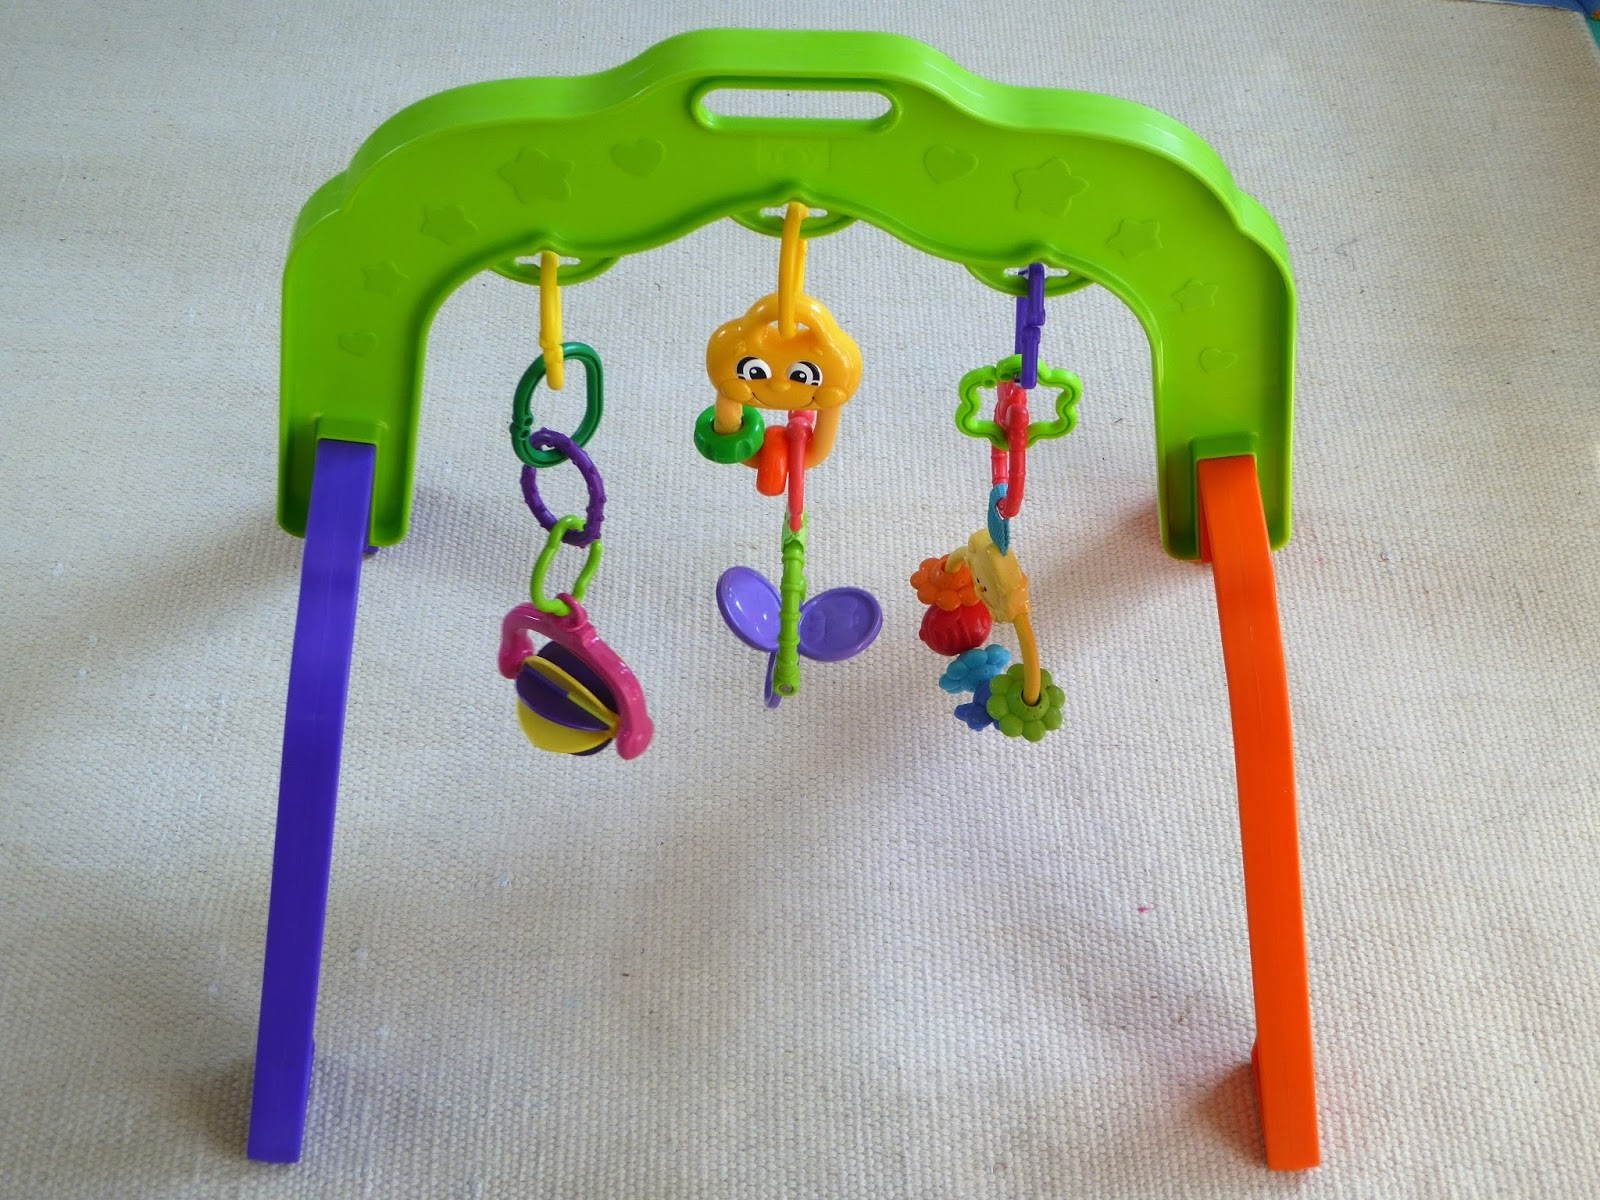 Family FECS Baby Developmental Toys 0 1 year old